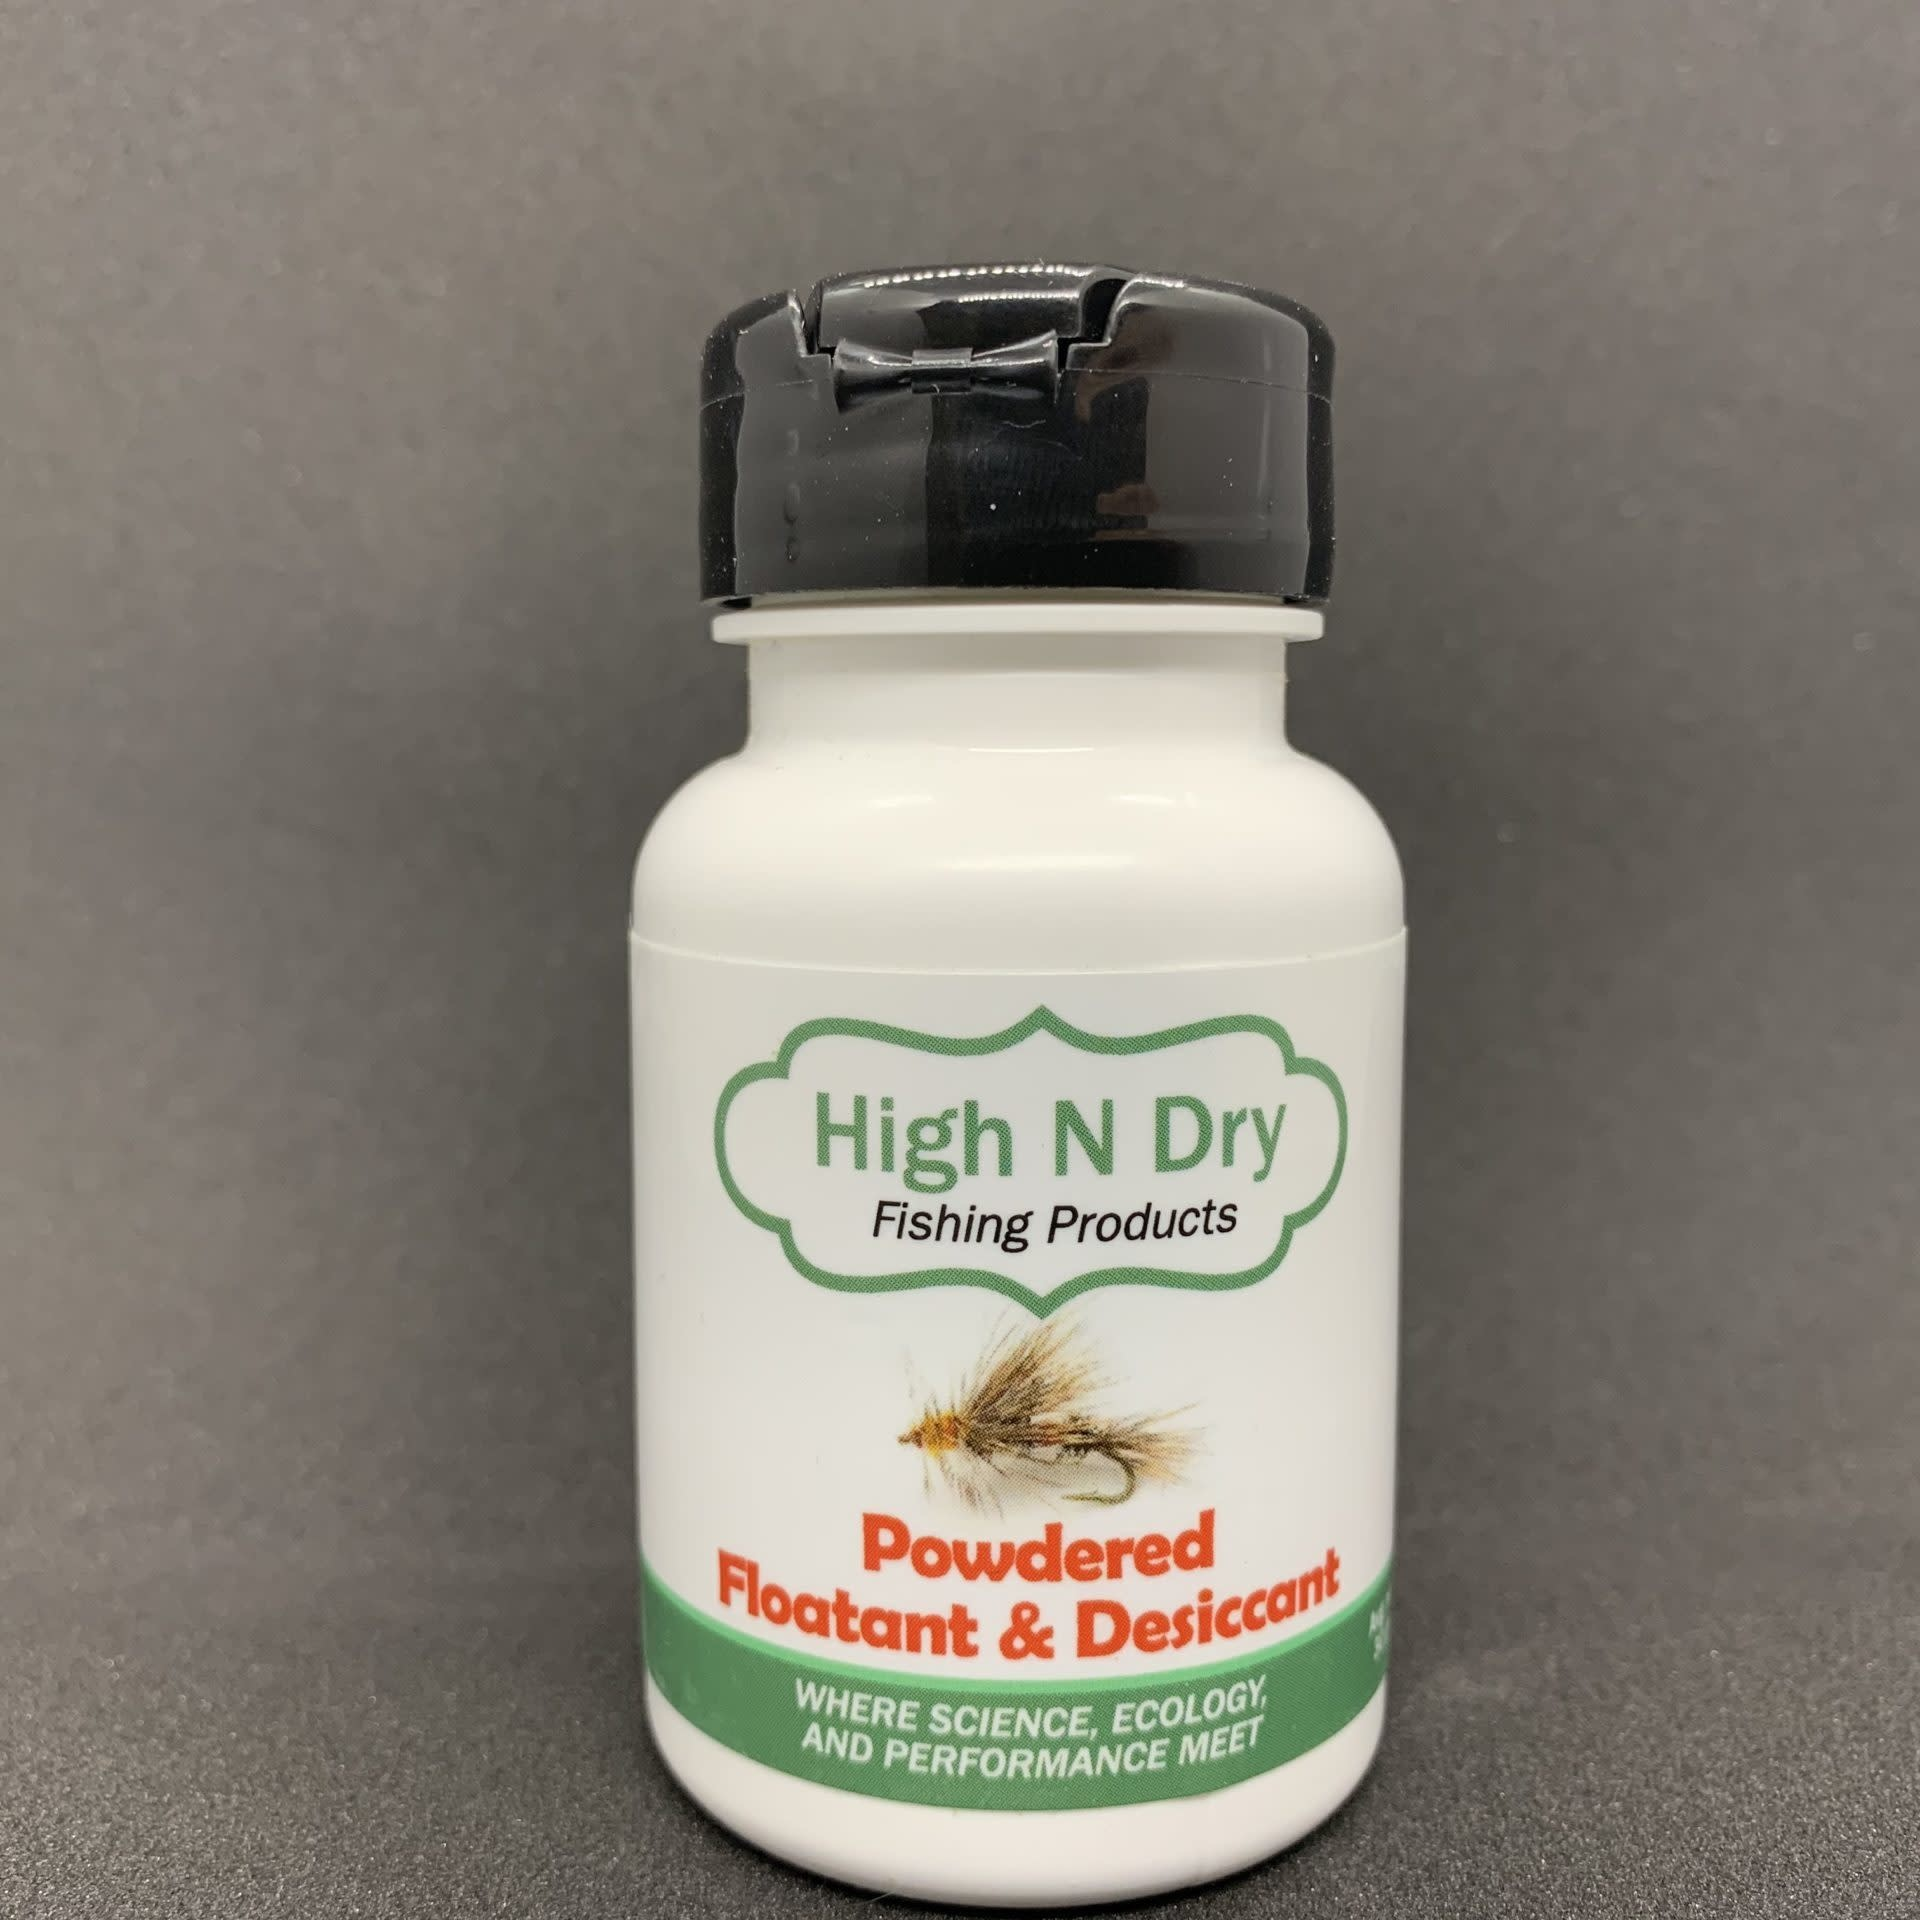 HIGH N DRY FISHING PRODUCTS HIGH N DRY POWDERED FLOATANT & DESICCANT [10/case]